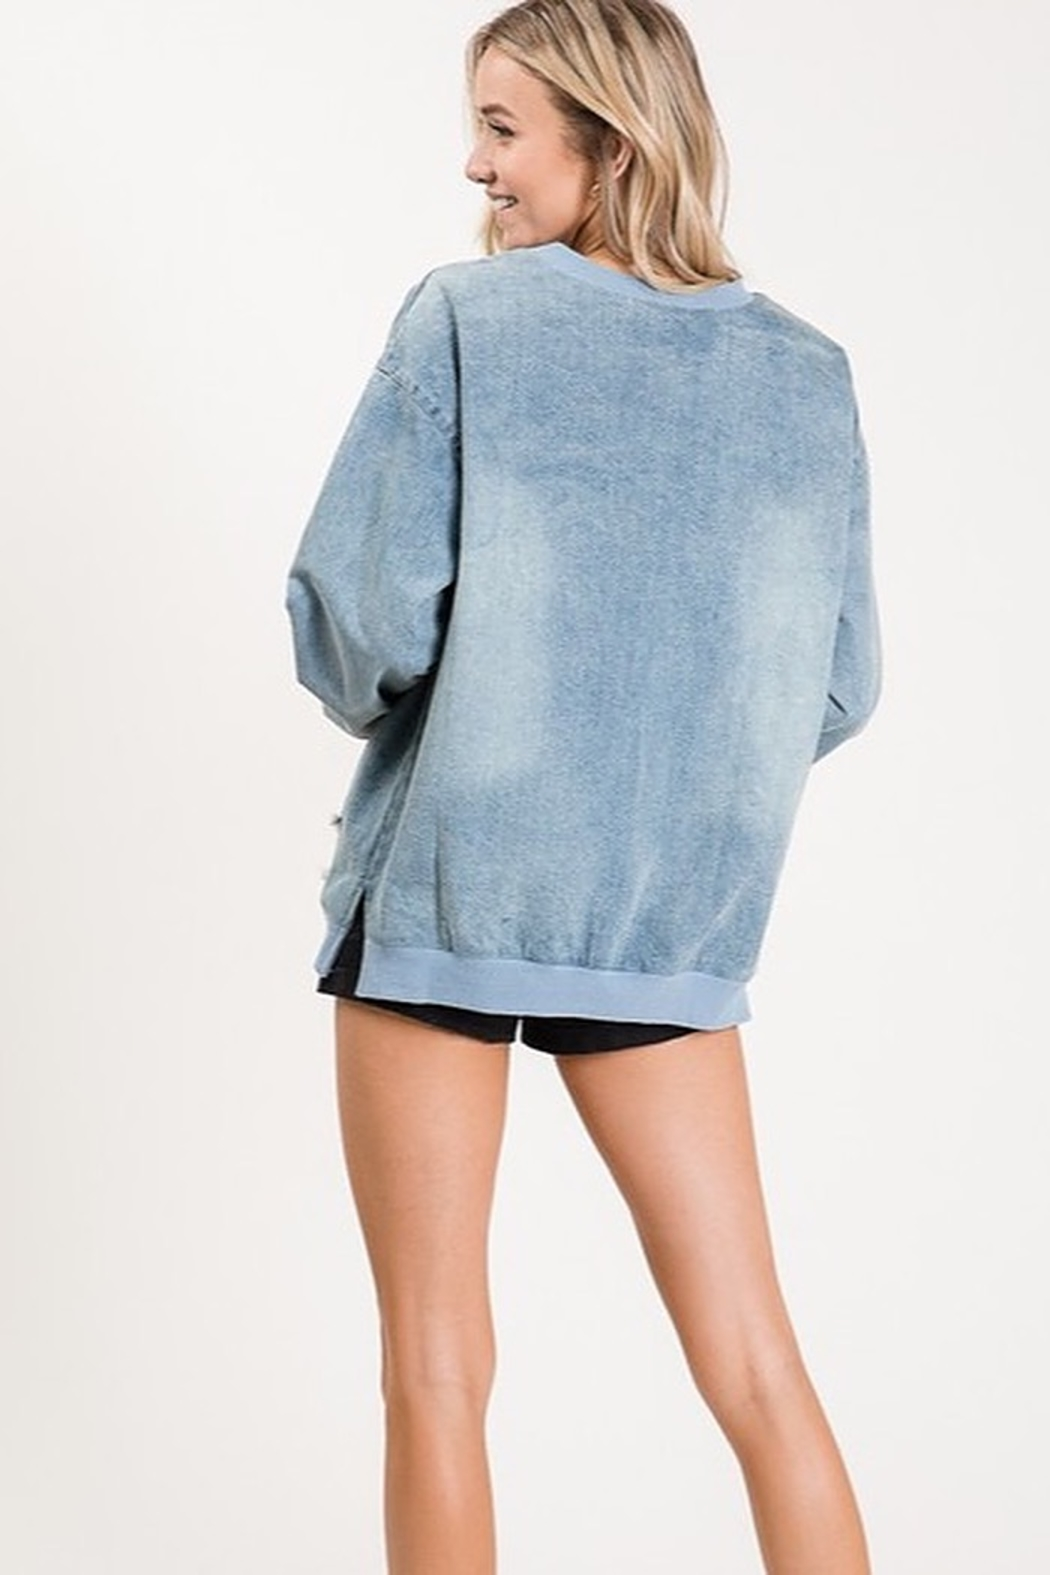 Macaron VINTAGE LOOKING DENIM PULL OVER TOP - Front Full Image